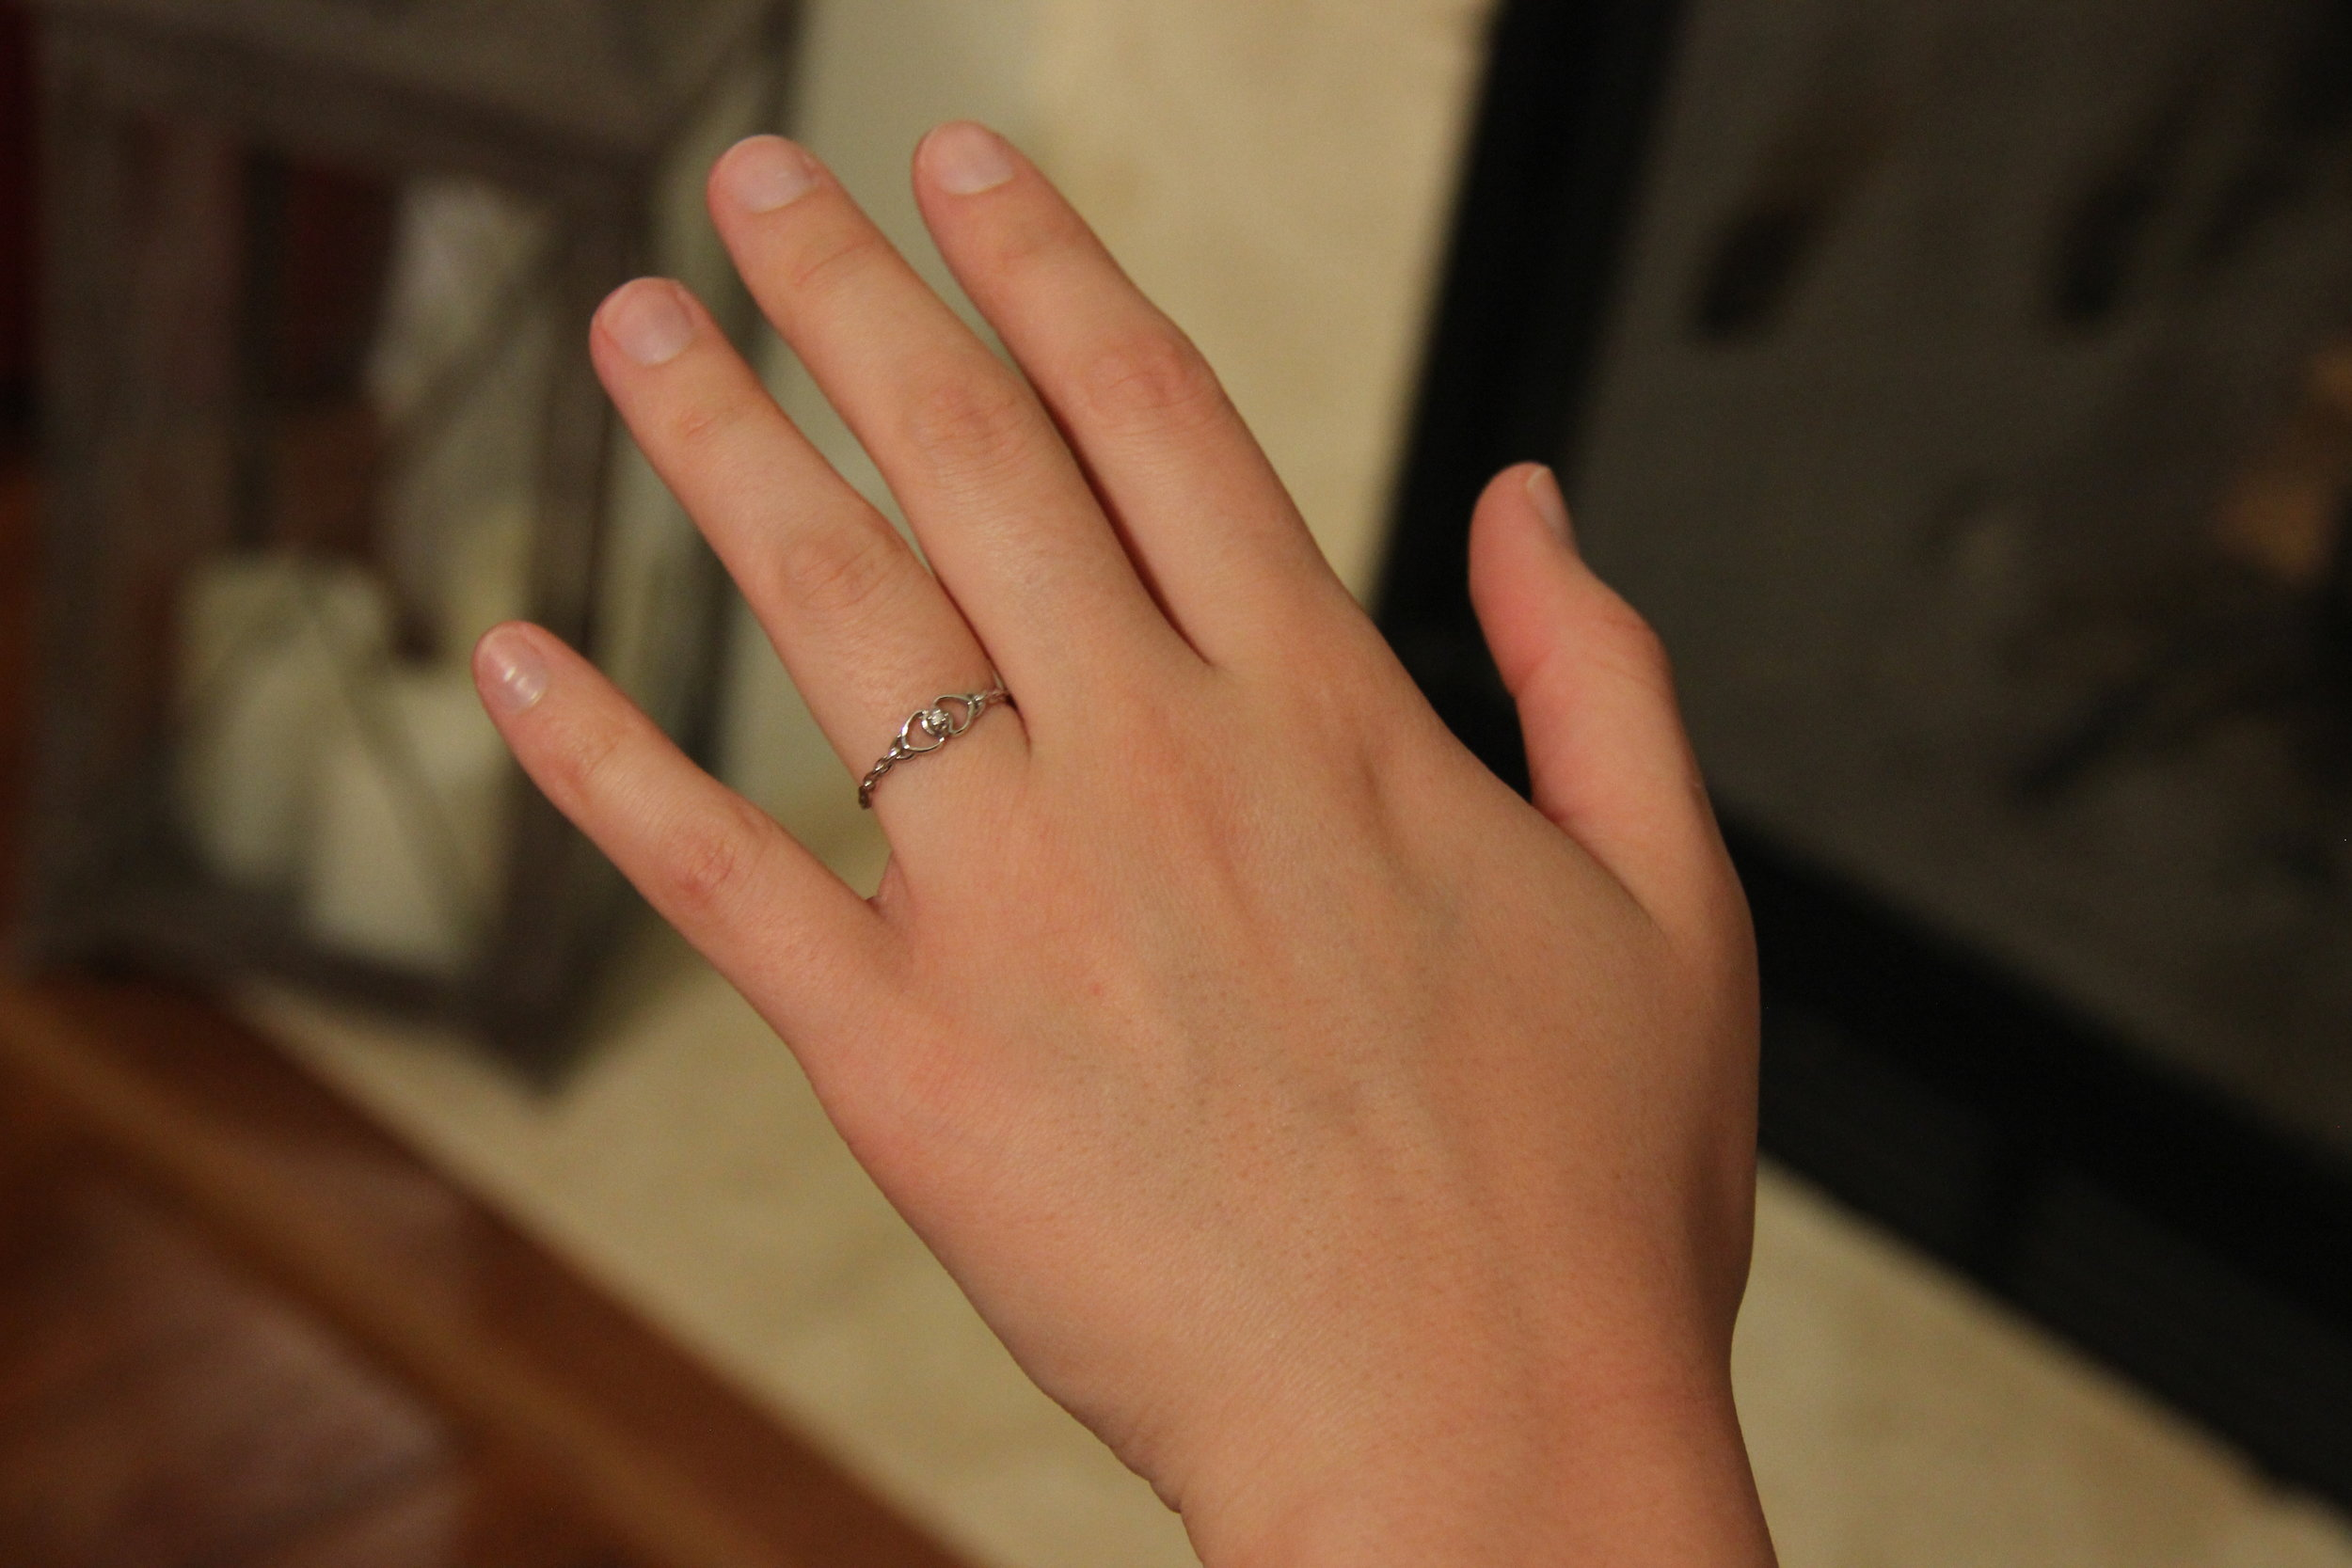 Rachel Daniel (Freshman - Broadcast Media)posing with a ring her dad bought her for a graduation gift.